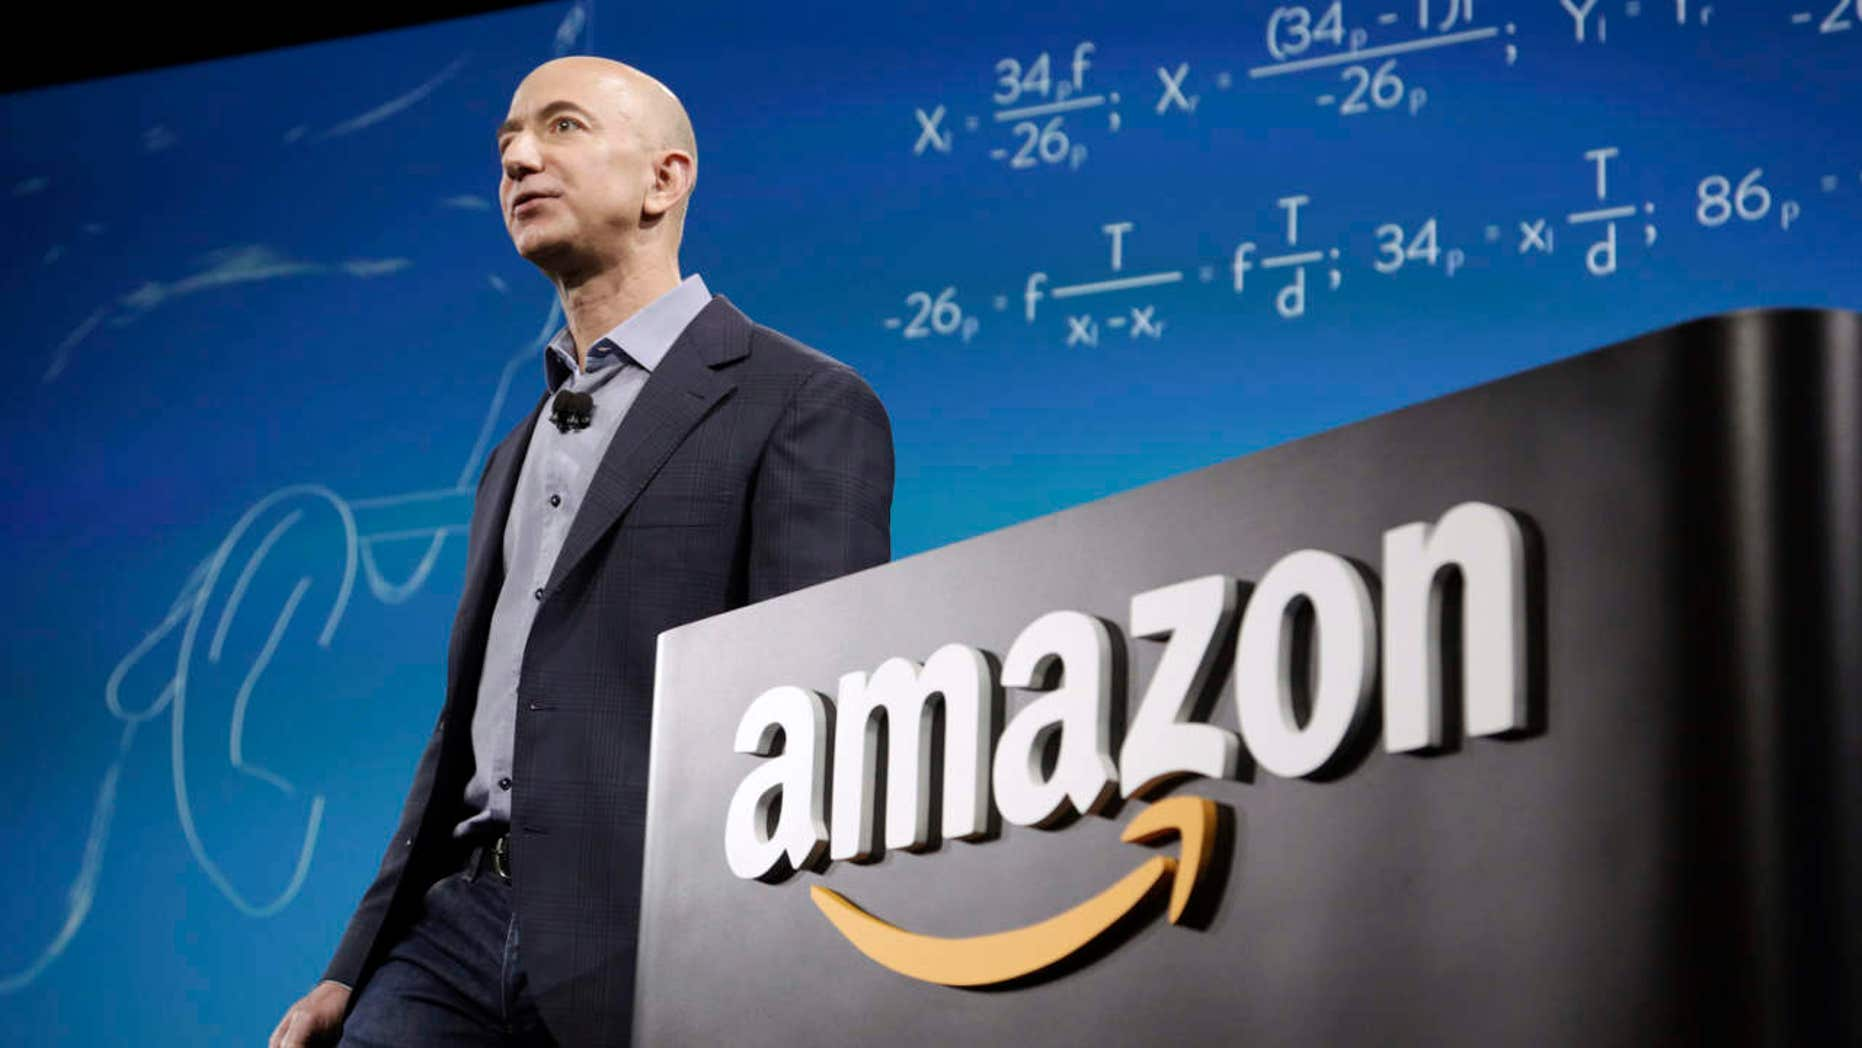 Amazon.com Inc. has transformed businesses including retailing, filmmaking and data storage. But no one anticipated the bananas.